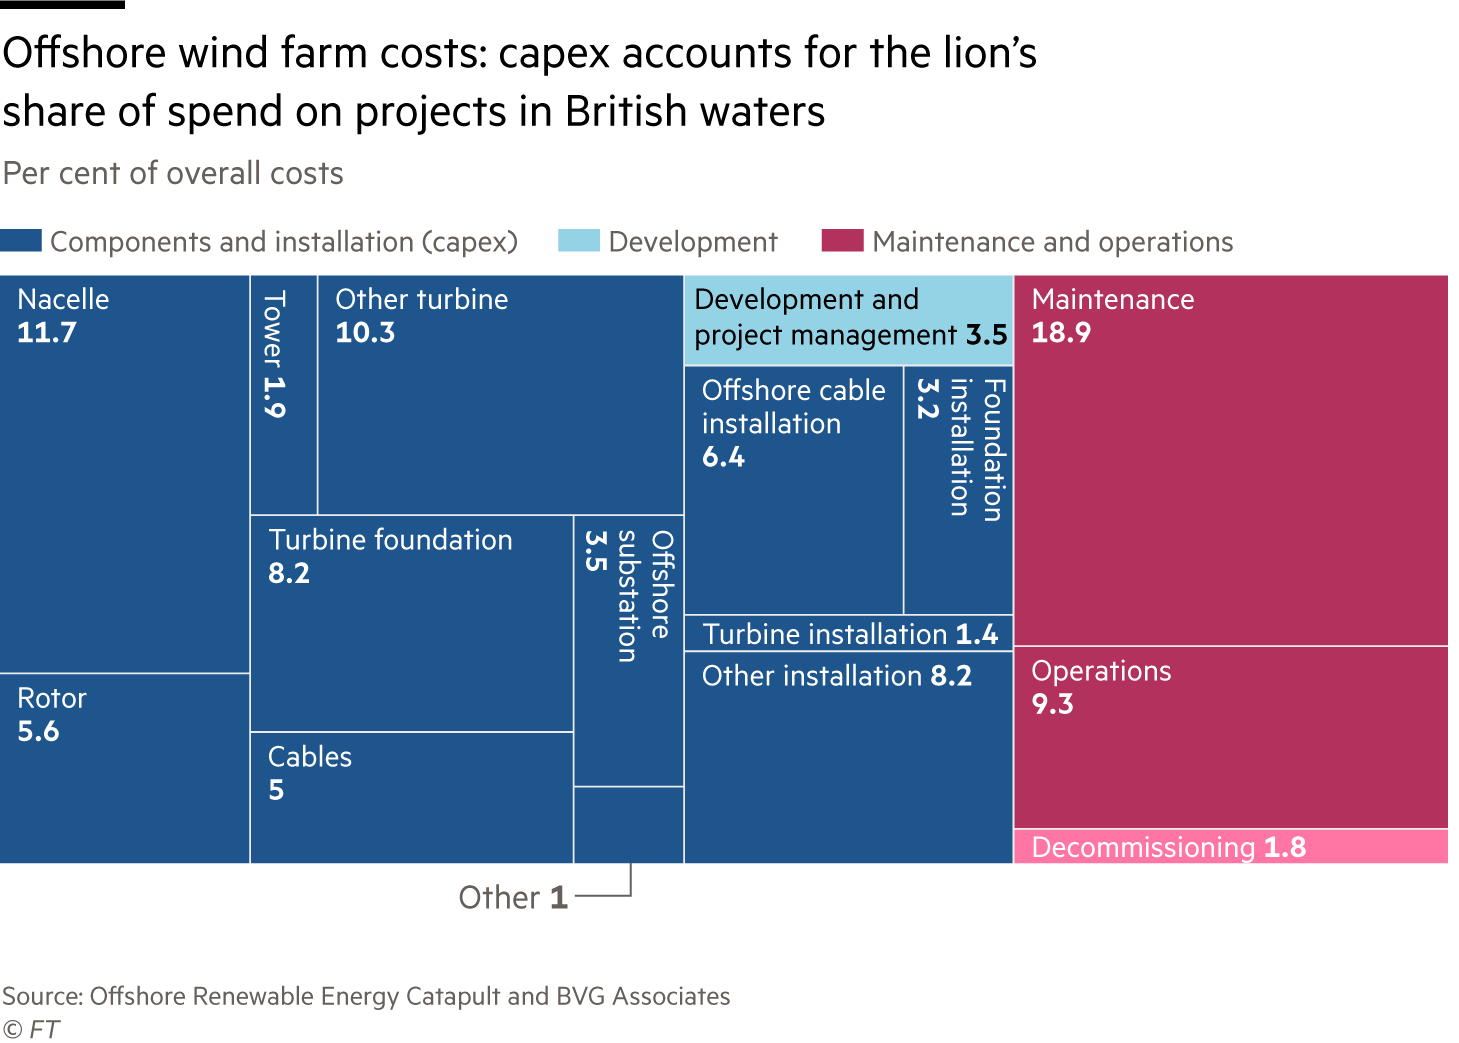 Offshore wind farm costs: capex accounts for the lion's share of spend on projects in British waters. Breakdown of overall costs of wind farm